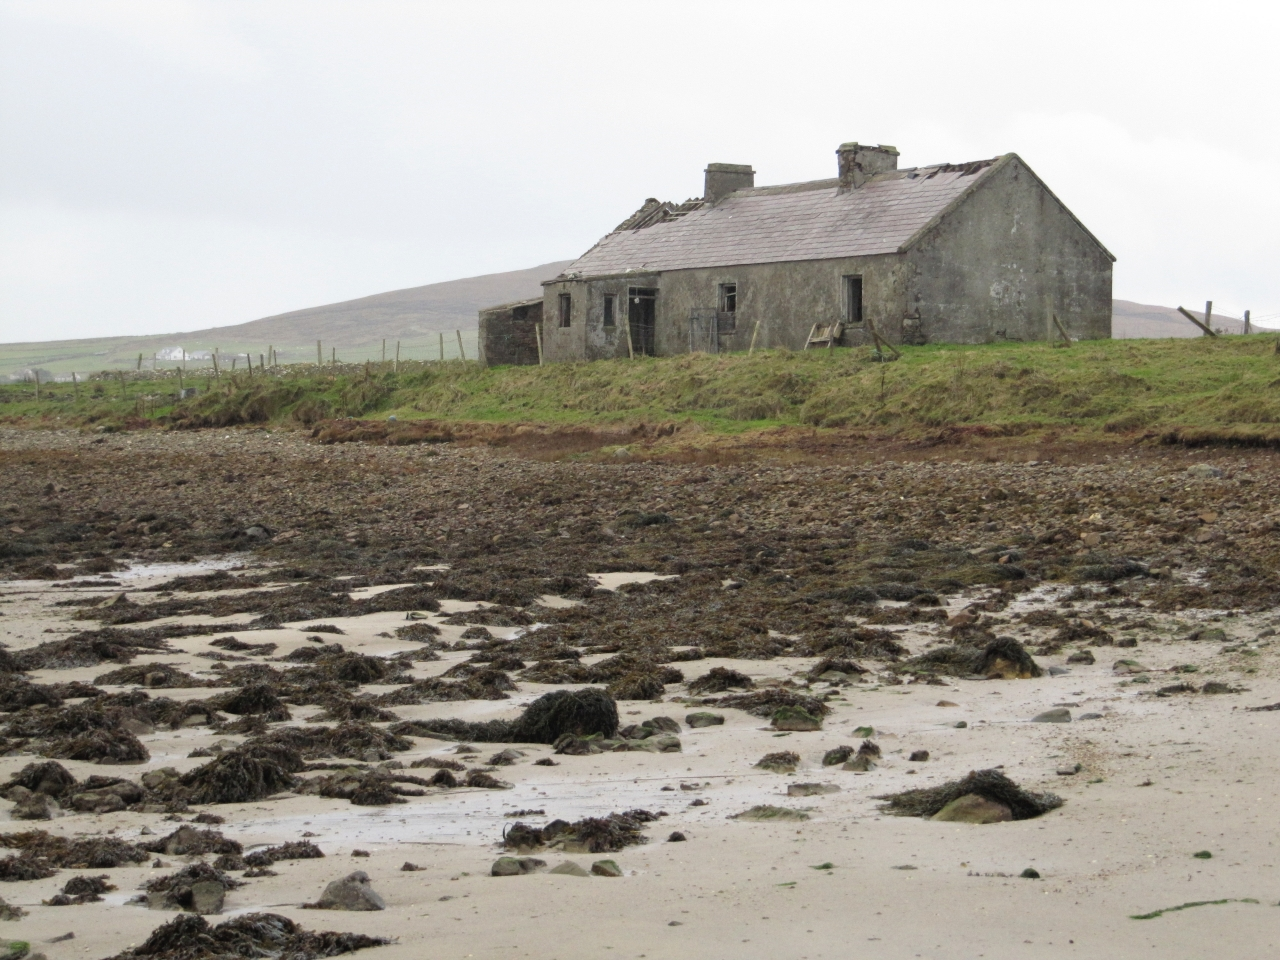 House by Tipp Pier.